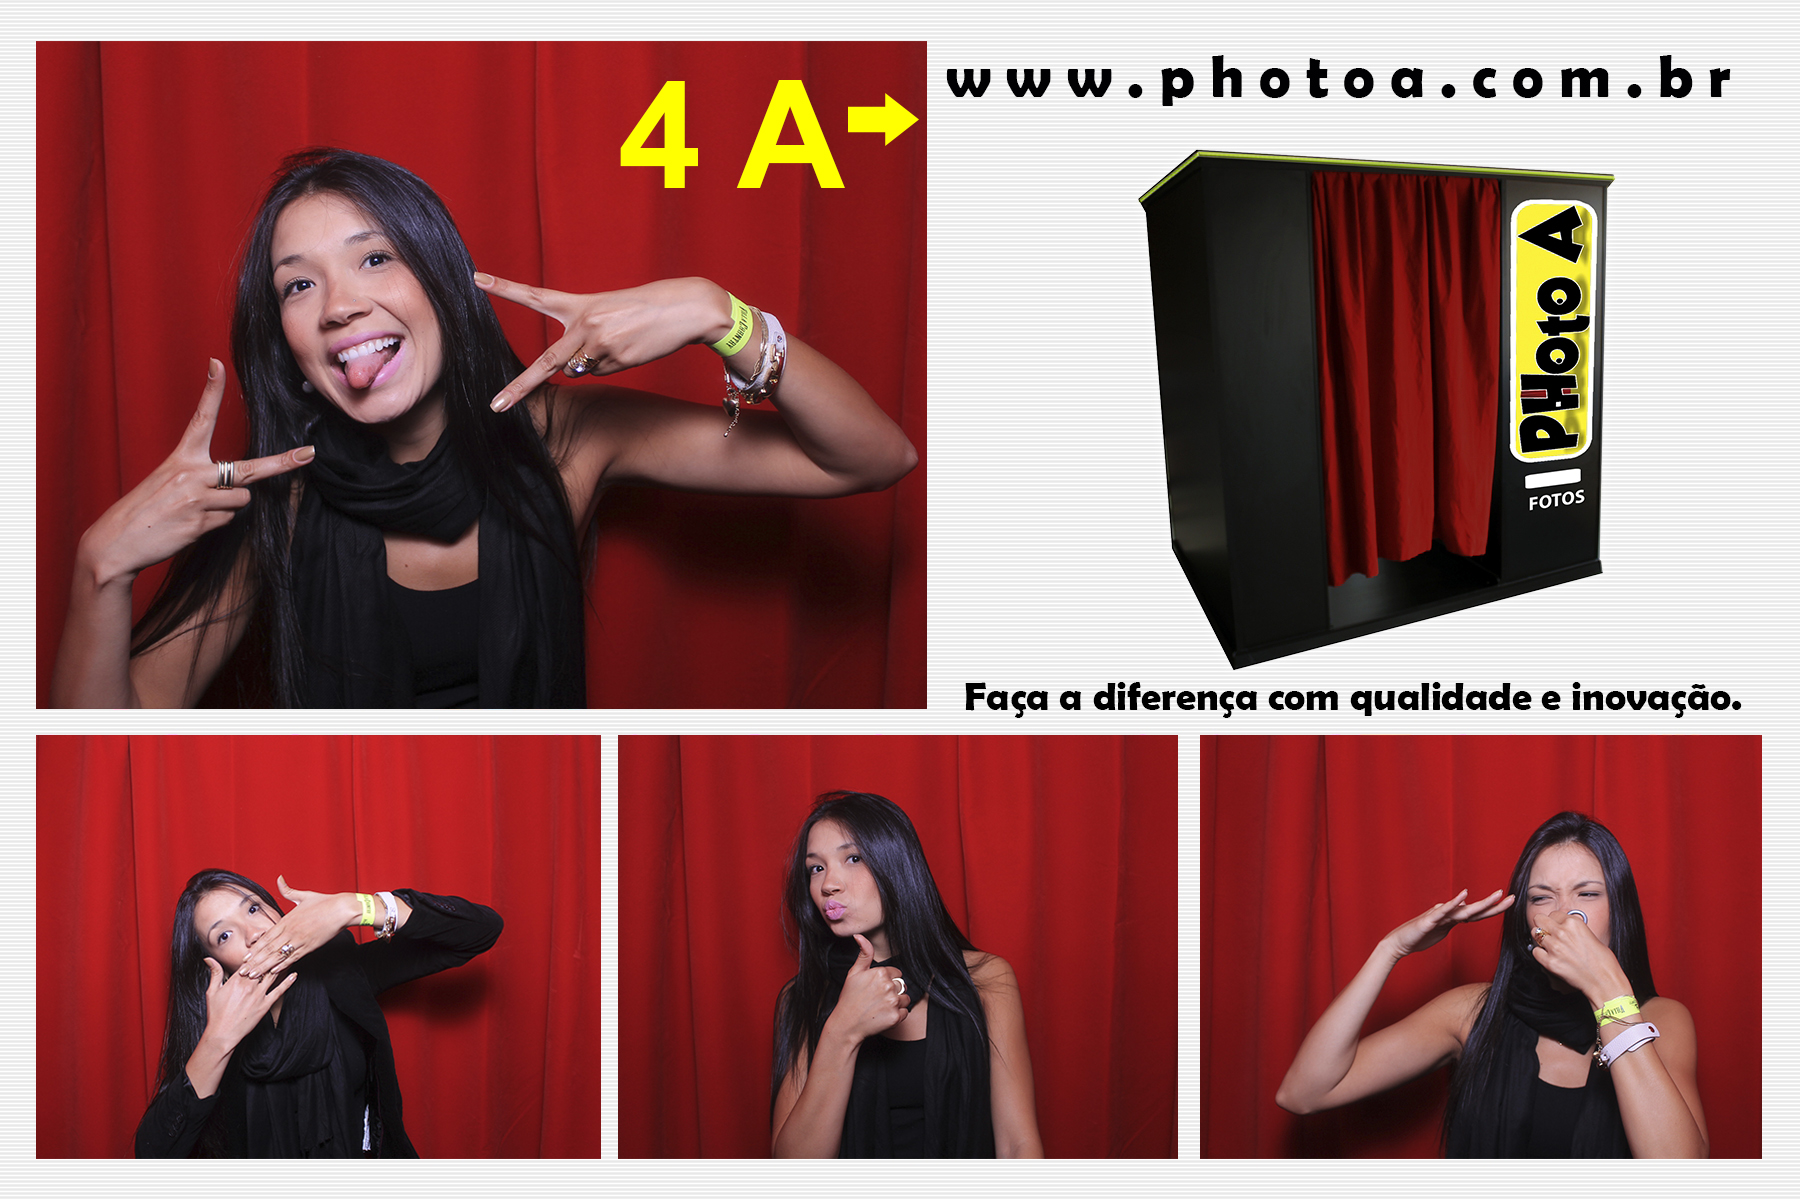 Photo A (exemplo 4) - cabine de fotos - fotocabine - fotos cabine - photo booth - maquina de fotos